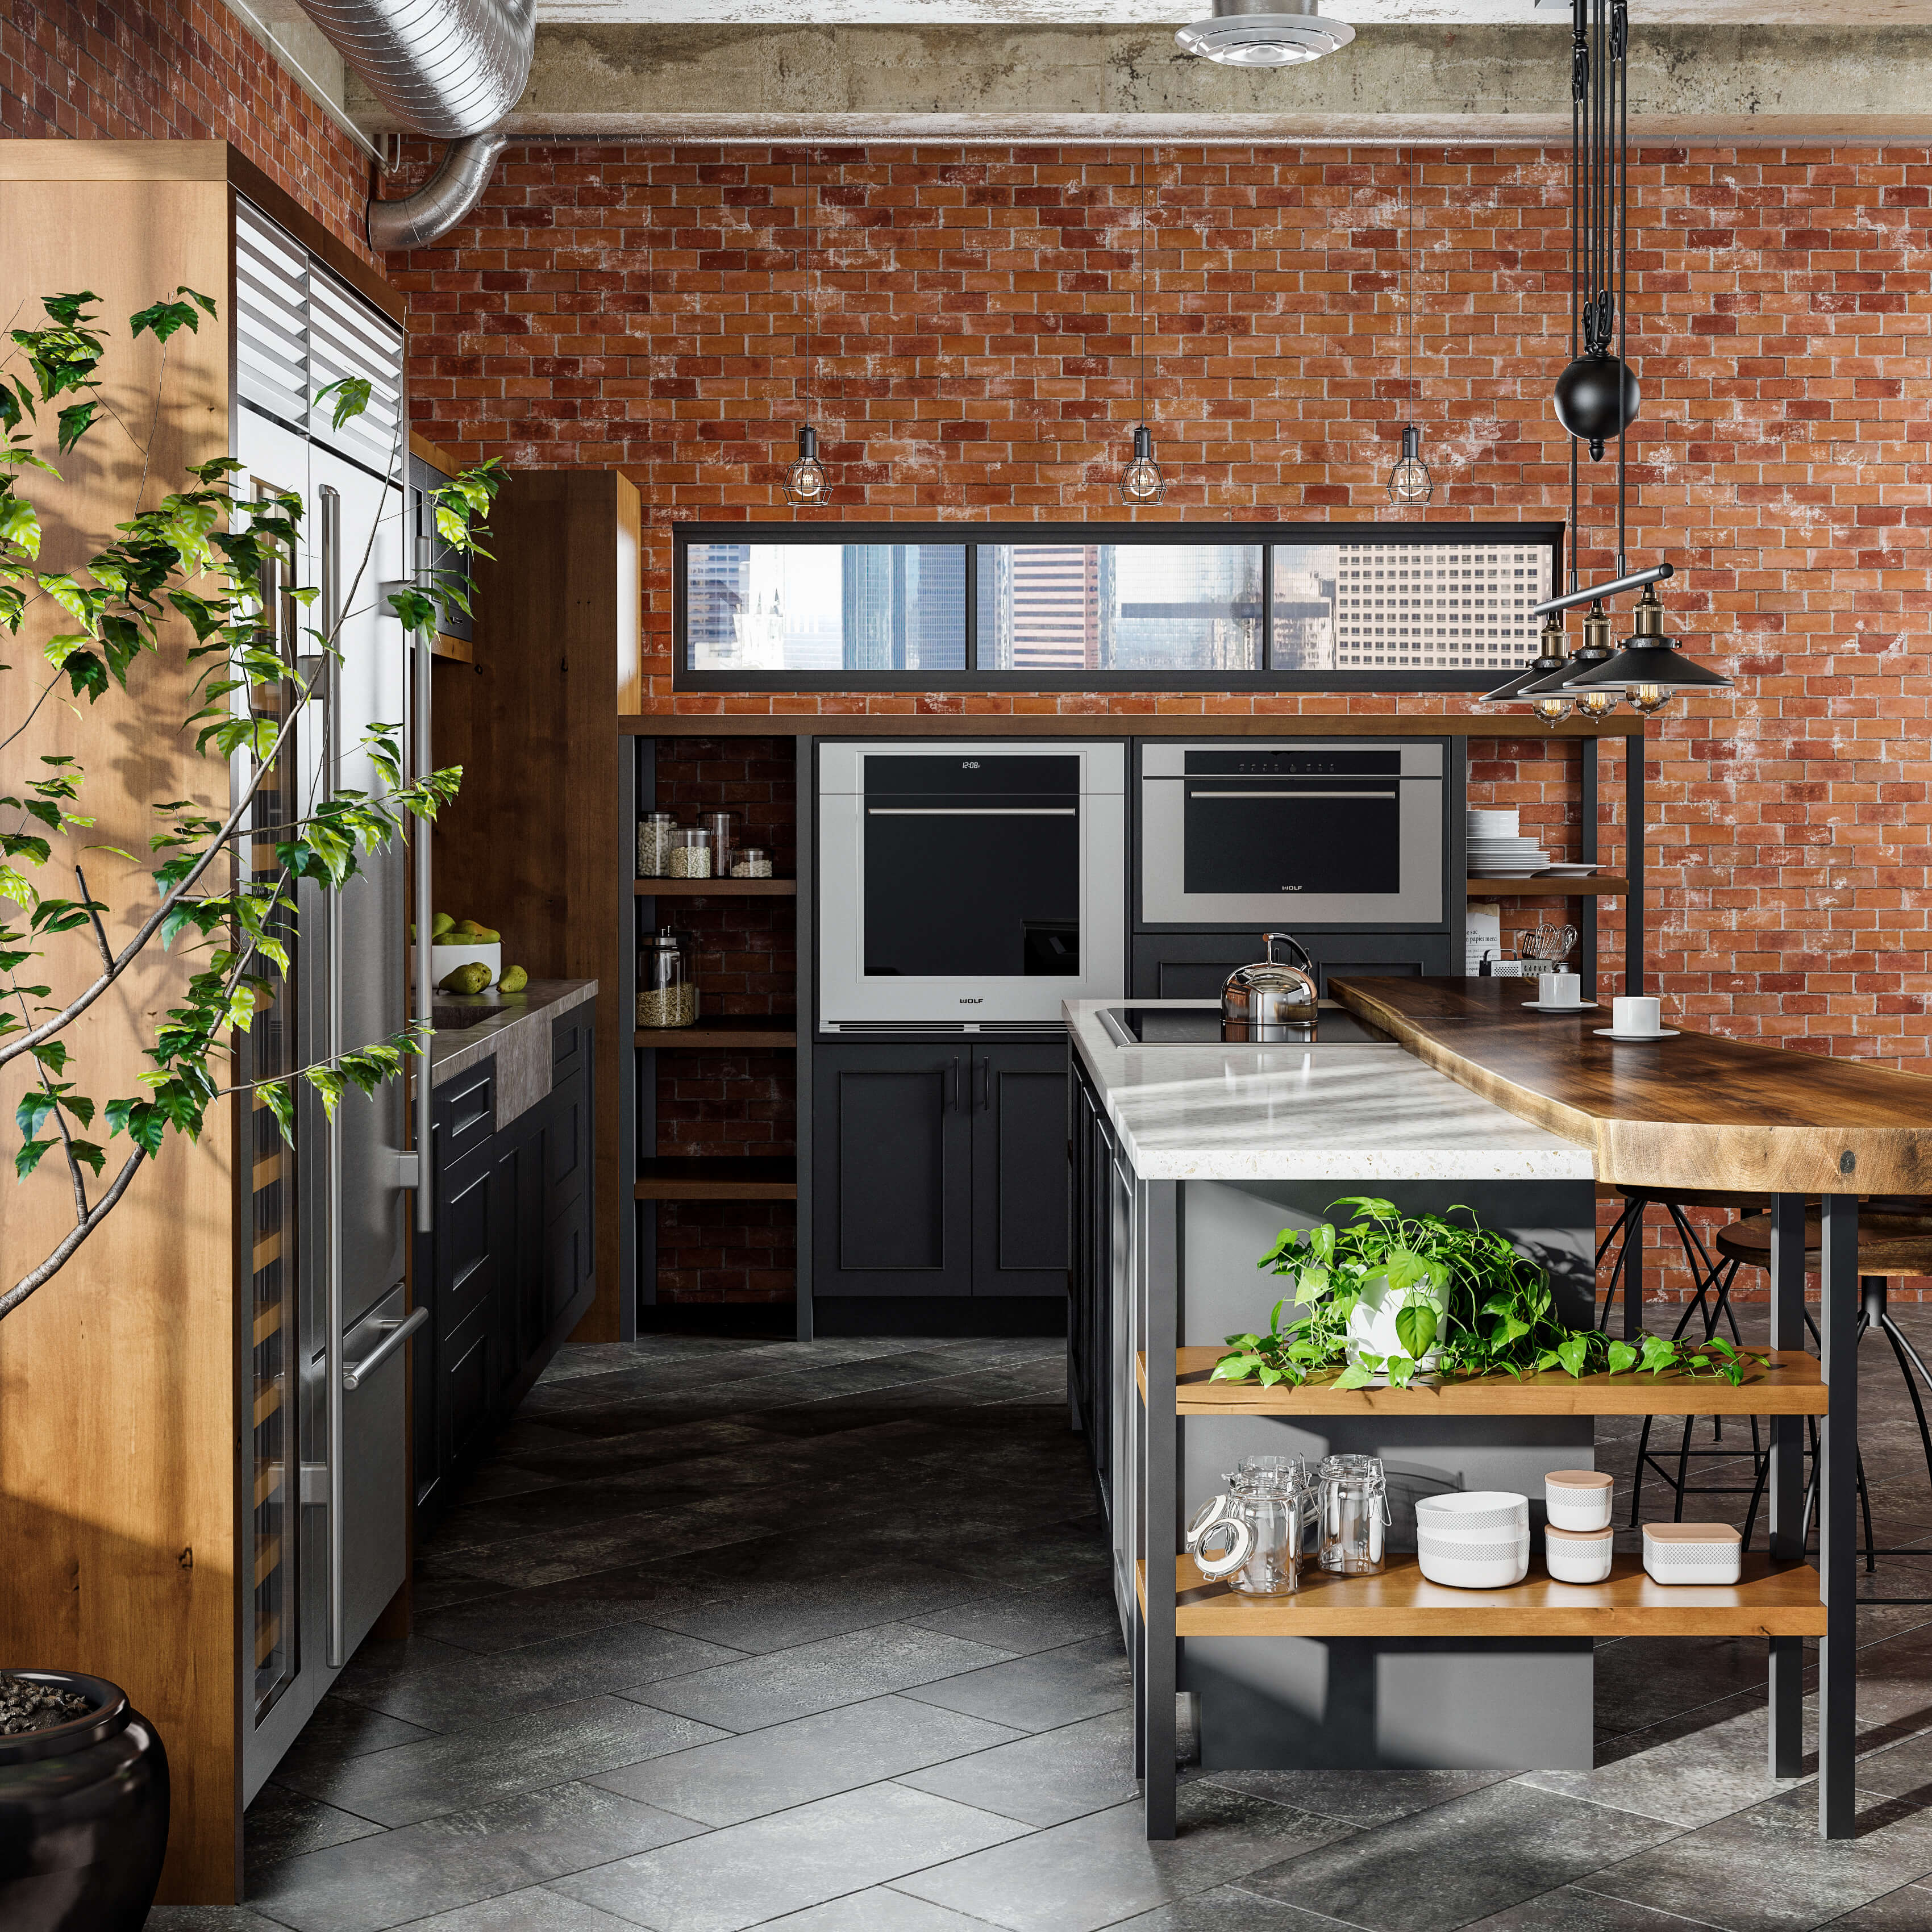 Dura Supreme Cabinetry in an Industrial styled kitchen